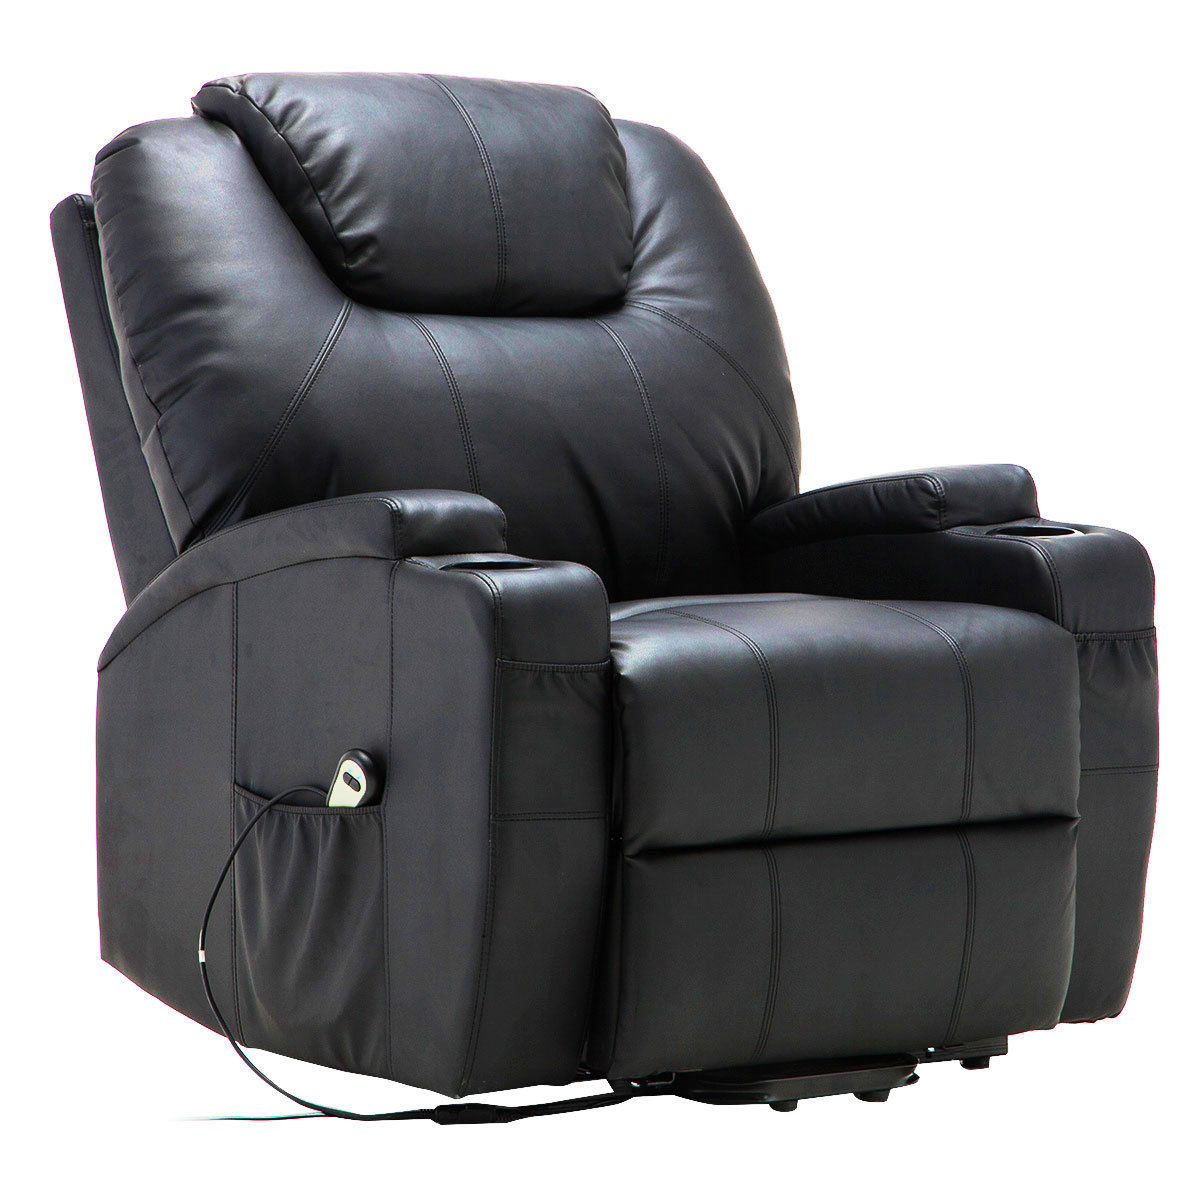 Costway Electric Lift Power Recliner Chair Heated Massage Sofa Lounge w/ Remote Control